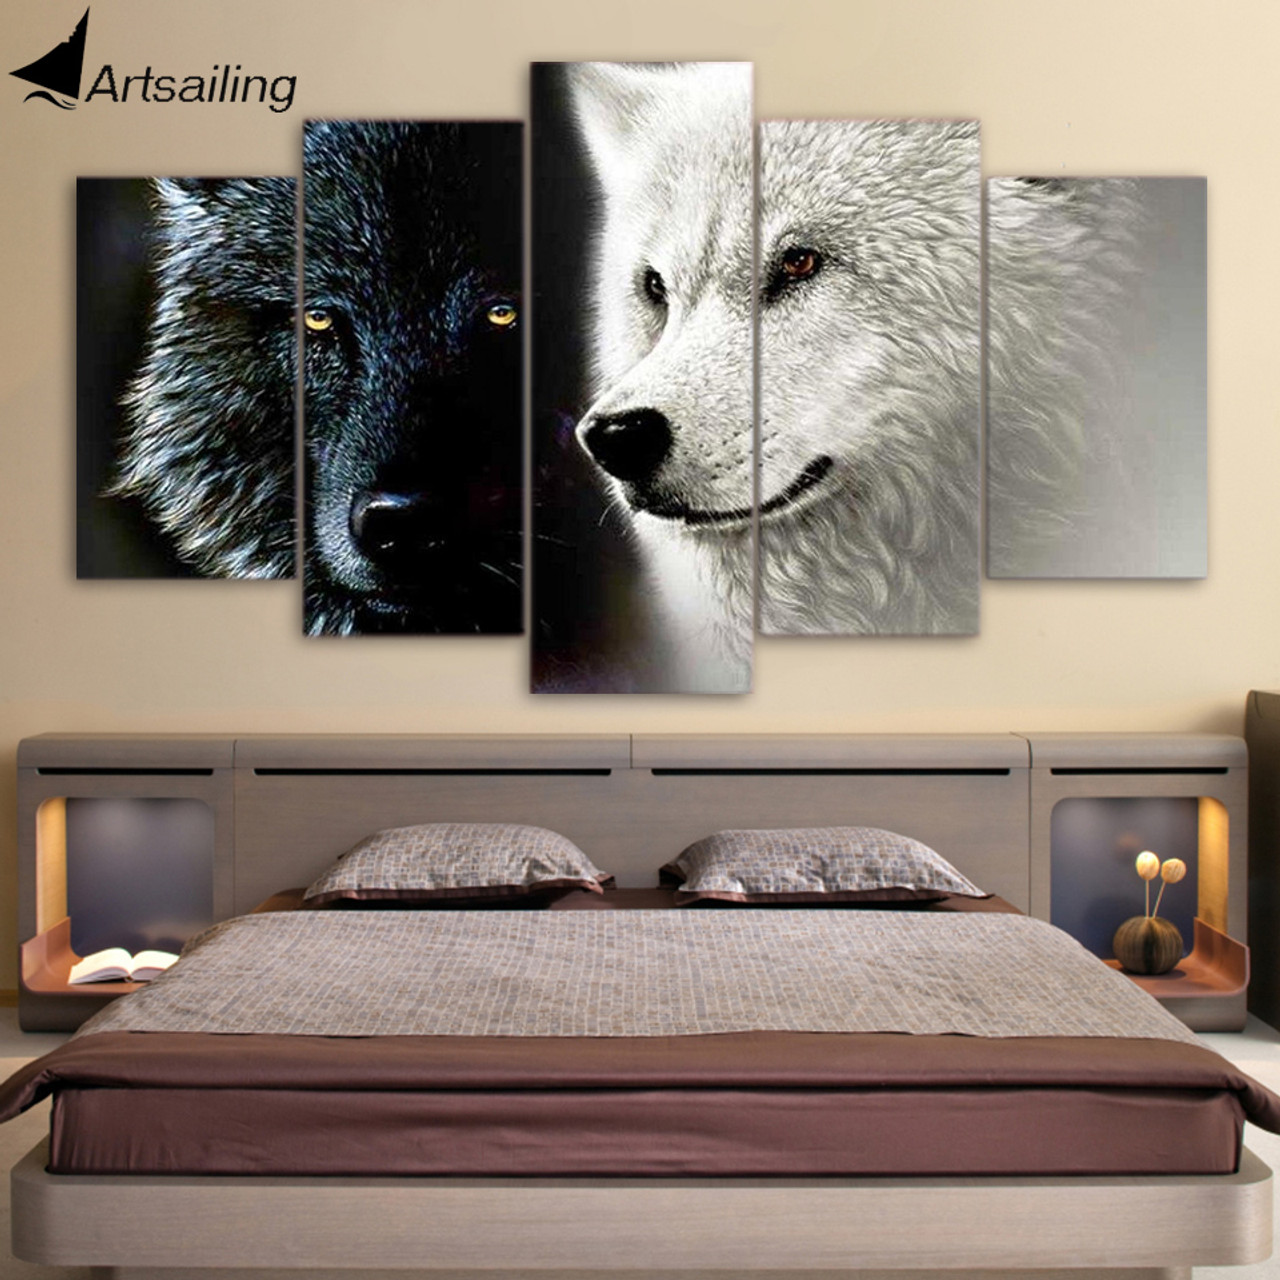 Hd Printed 5 Piece Canvas Art Abstract Black White Wolf Couple Painting Wall Pictures For Living Room Free Shipping Cu 1677a